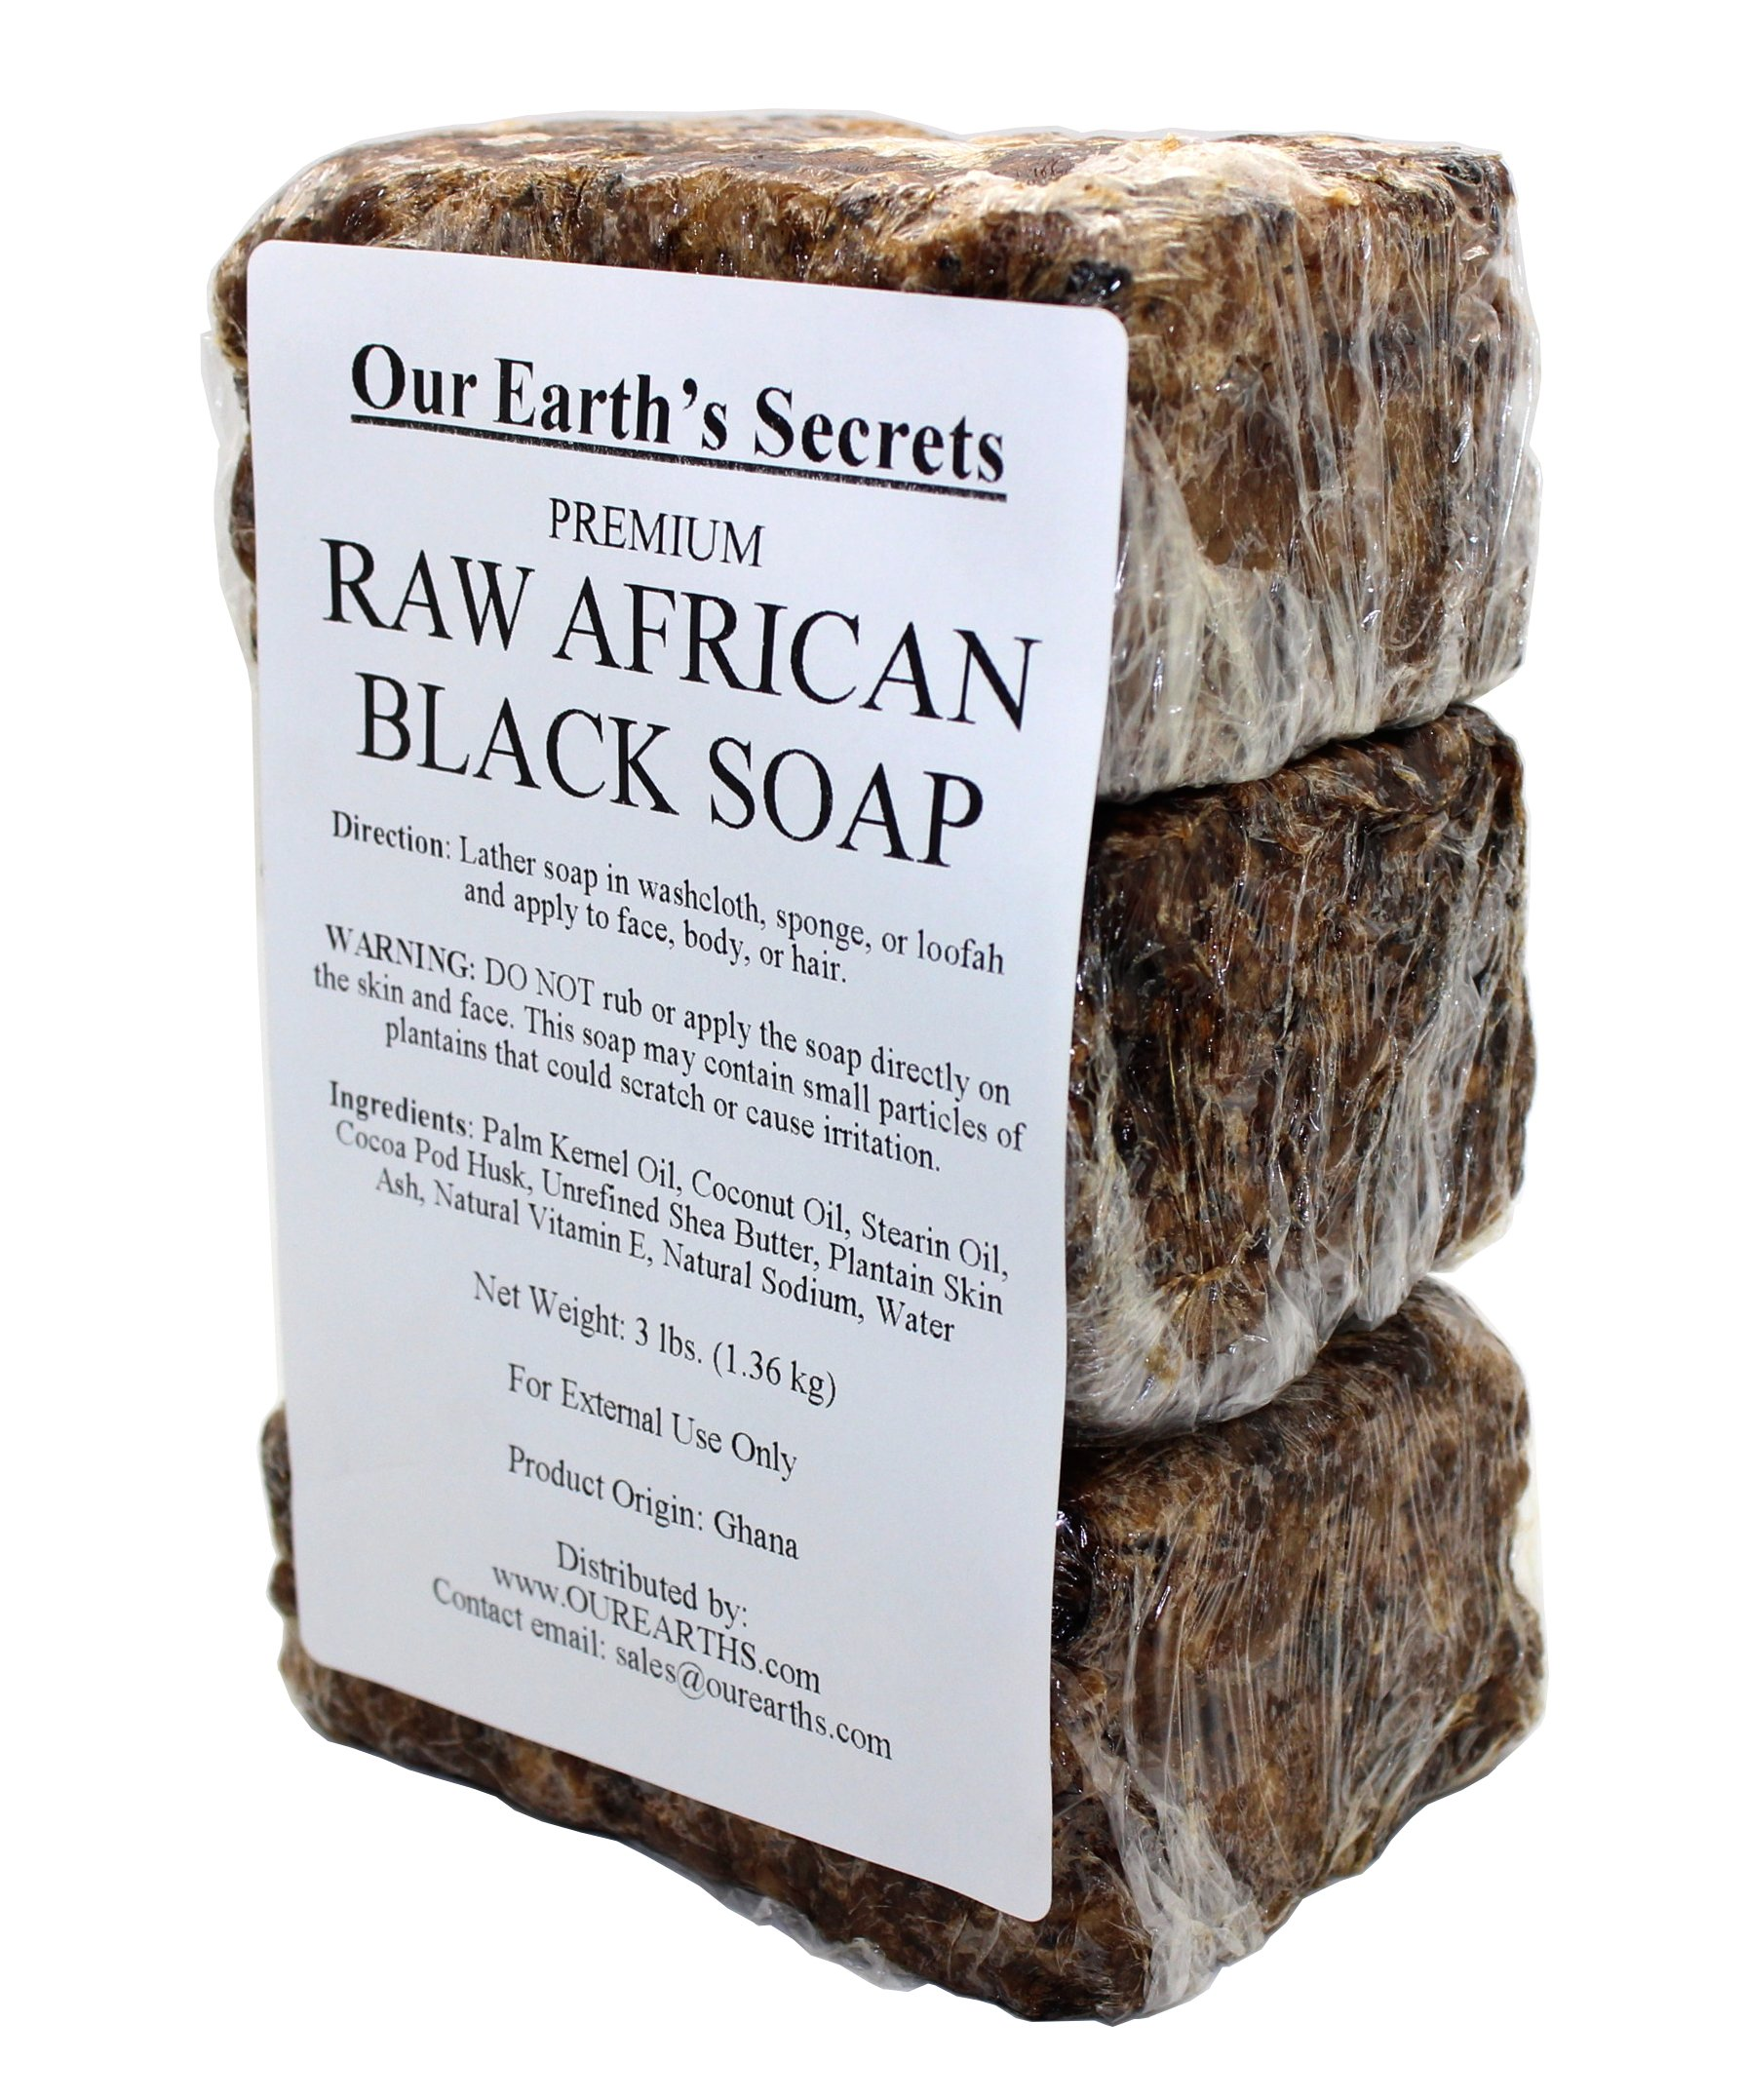 Our Earth's Secrets Premium Natural Raw African Black Soap, 3 Pound